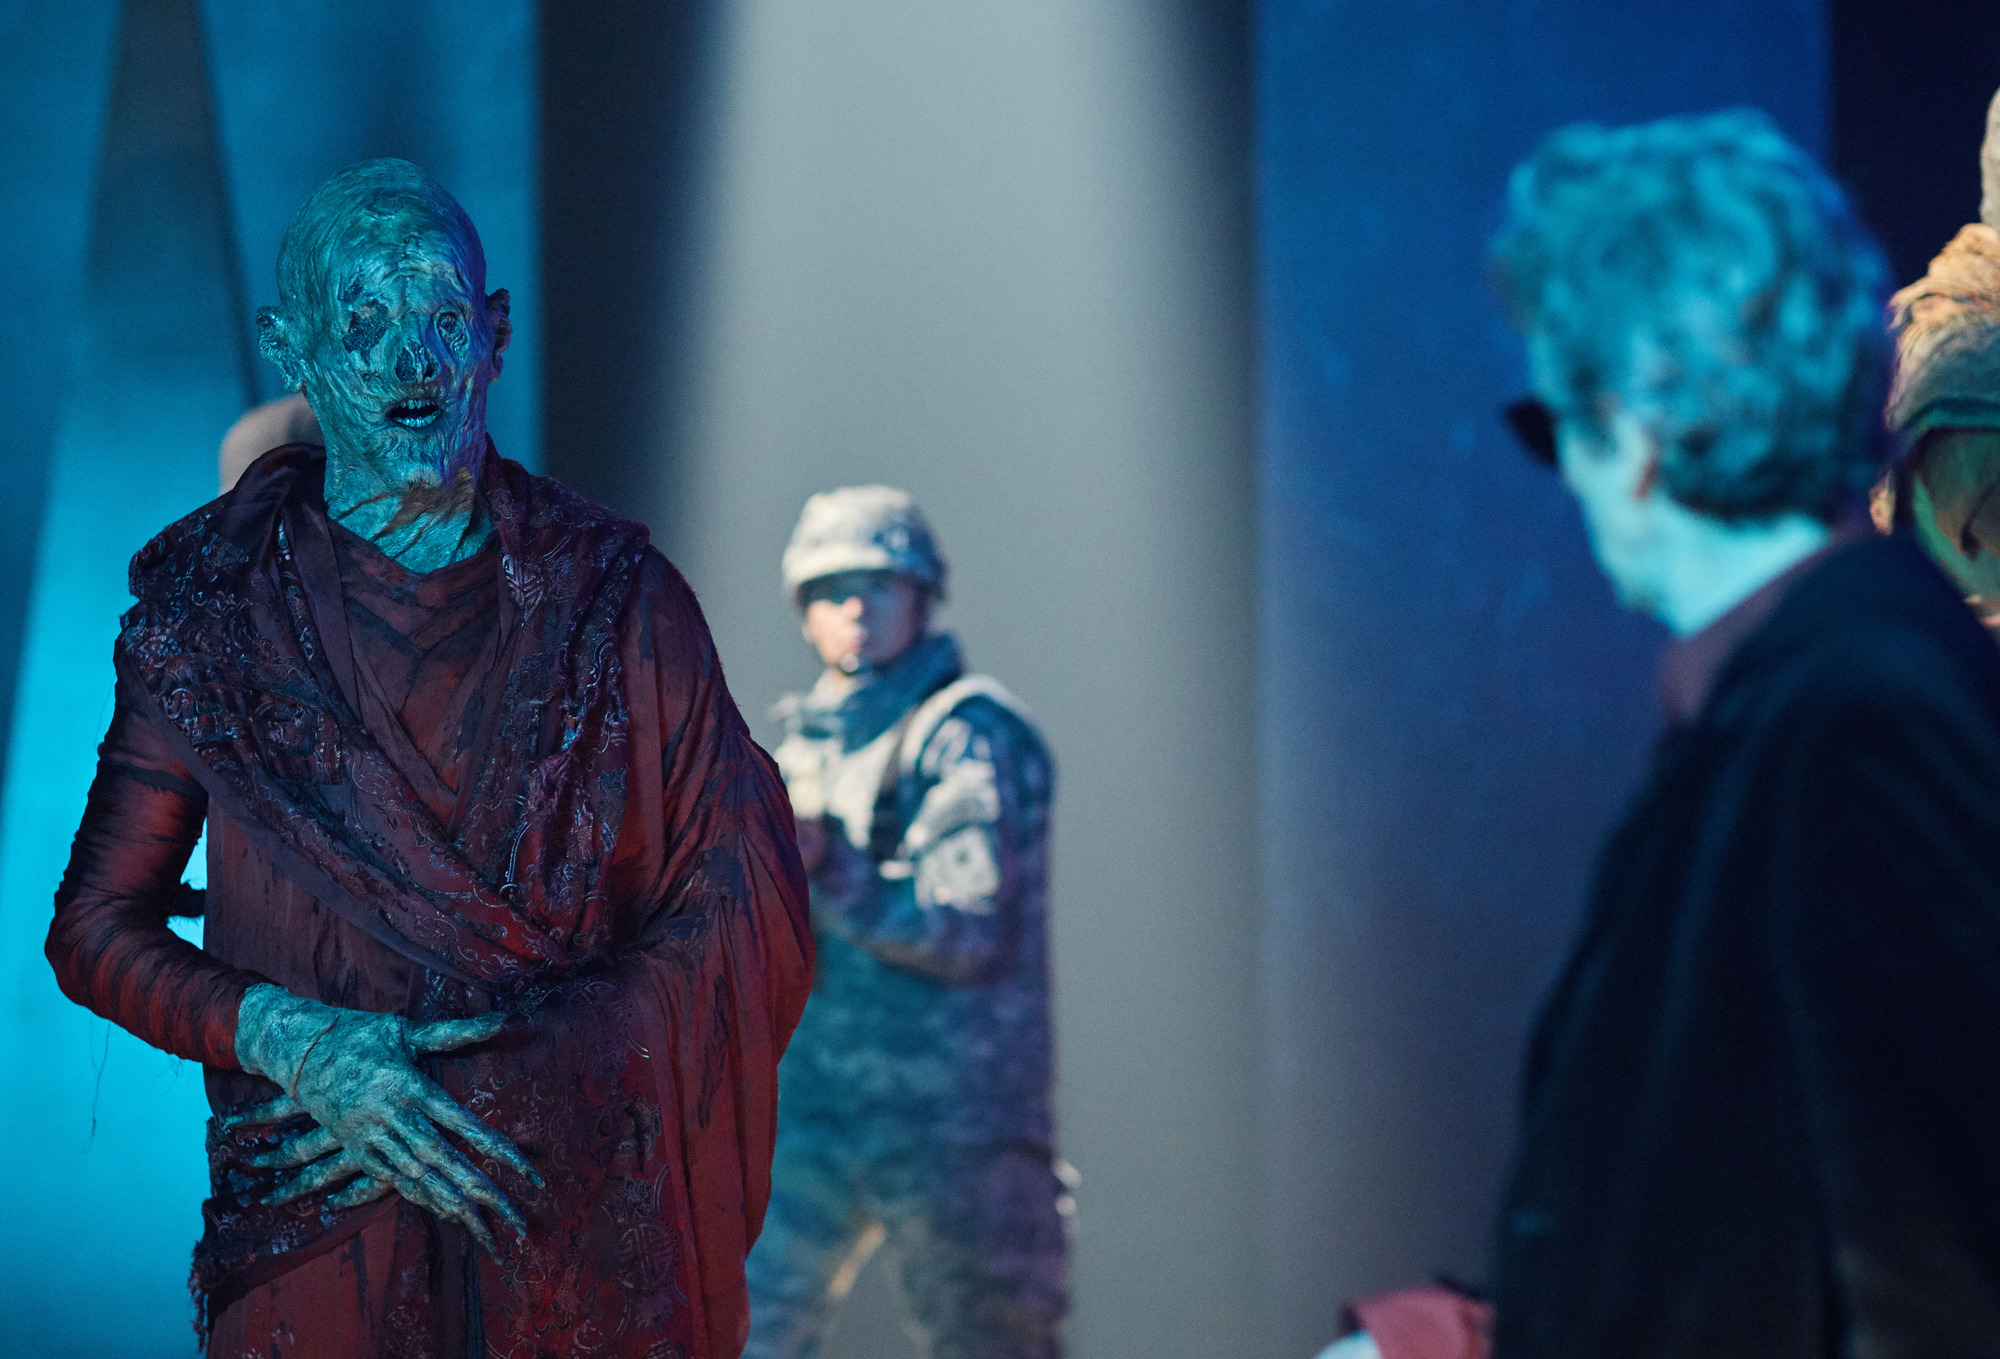 Doctor Who series 10 episode 7: Bill gets the Doctor his sight back, but was the cost too high?